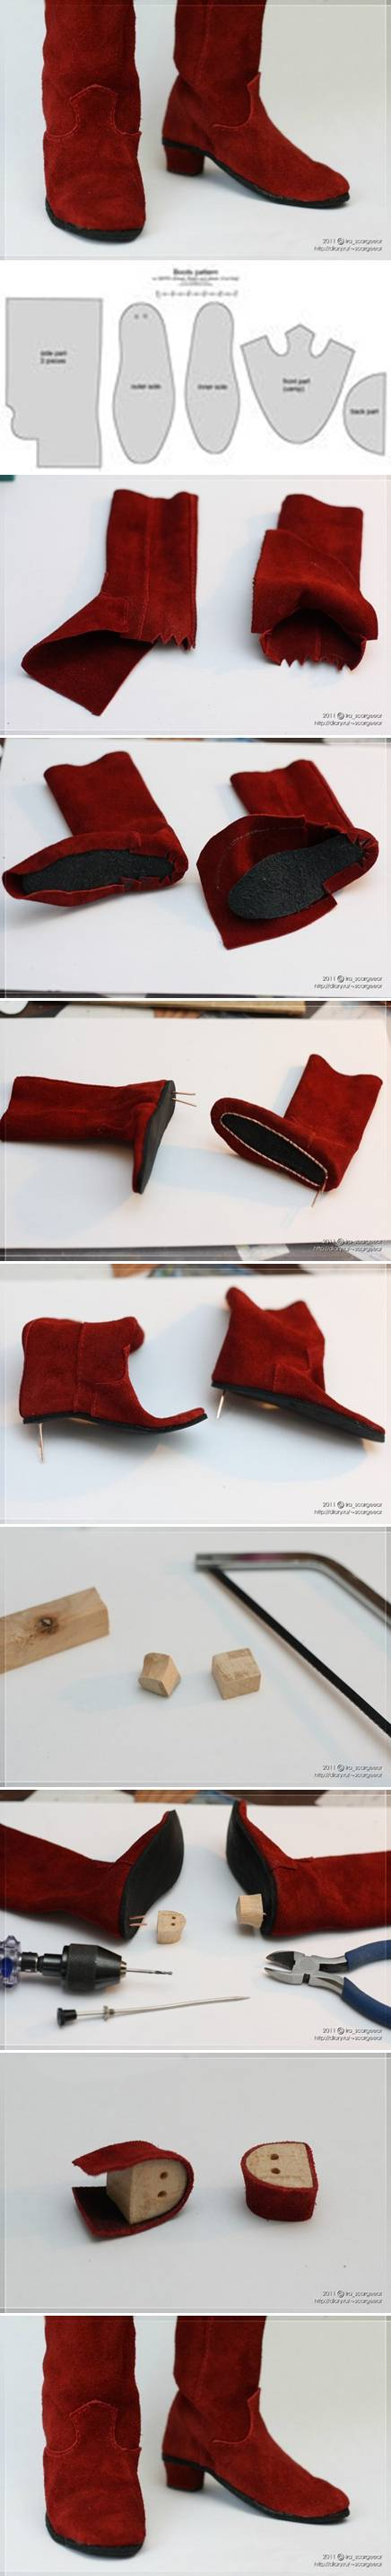 How to make Doll Boot step by step DIY tutorial instructions